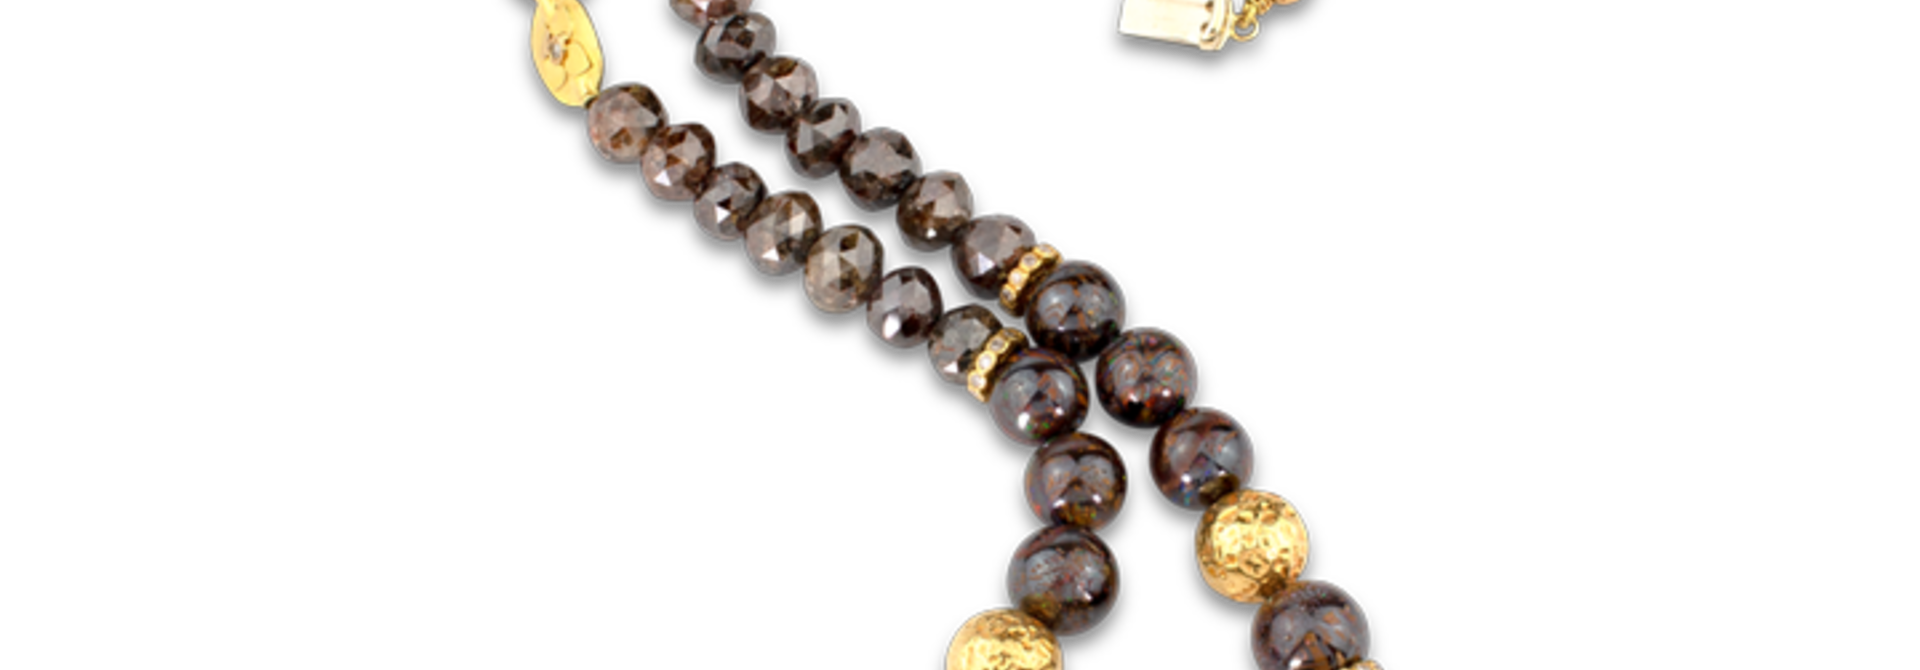 Boulder Opal and Brown Diamond Necklace - 32""